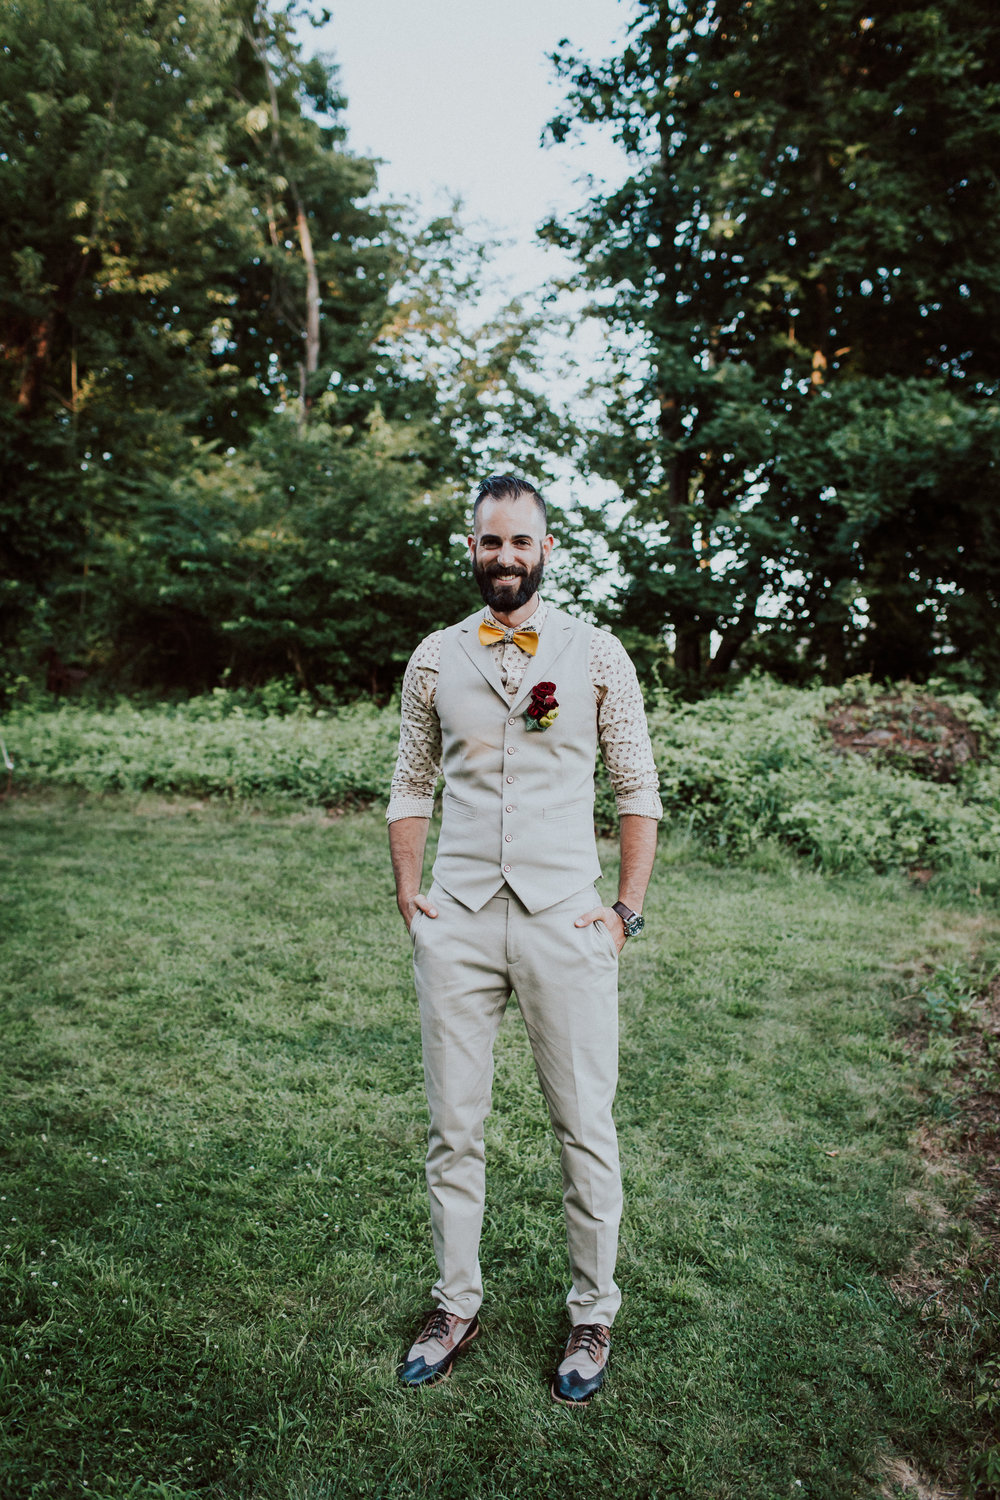 Backyard-Intimate-Adventurous-Destination-Wedding-Darien-Connecticut-Documentary-Wedding-Photography-96.jpg